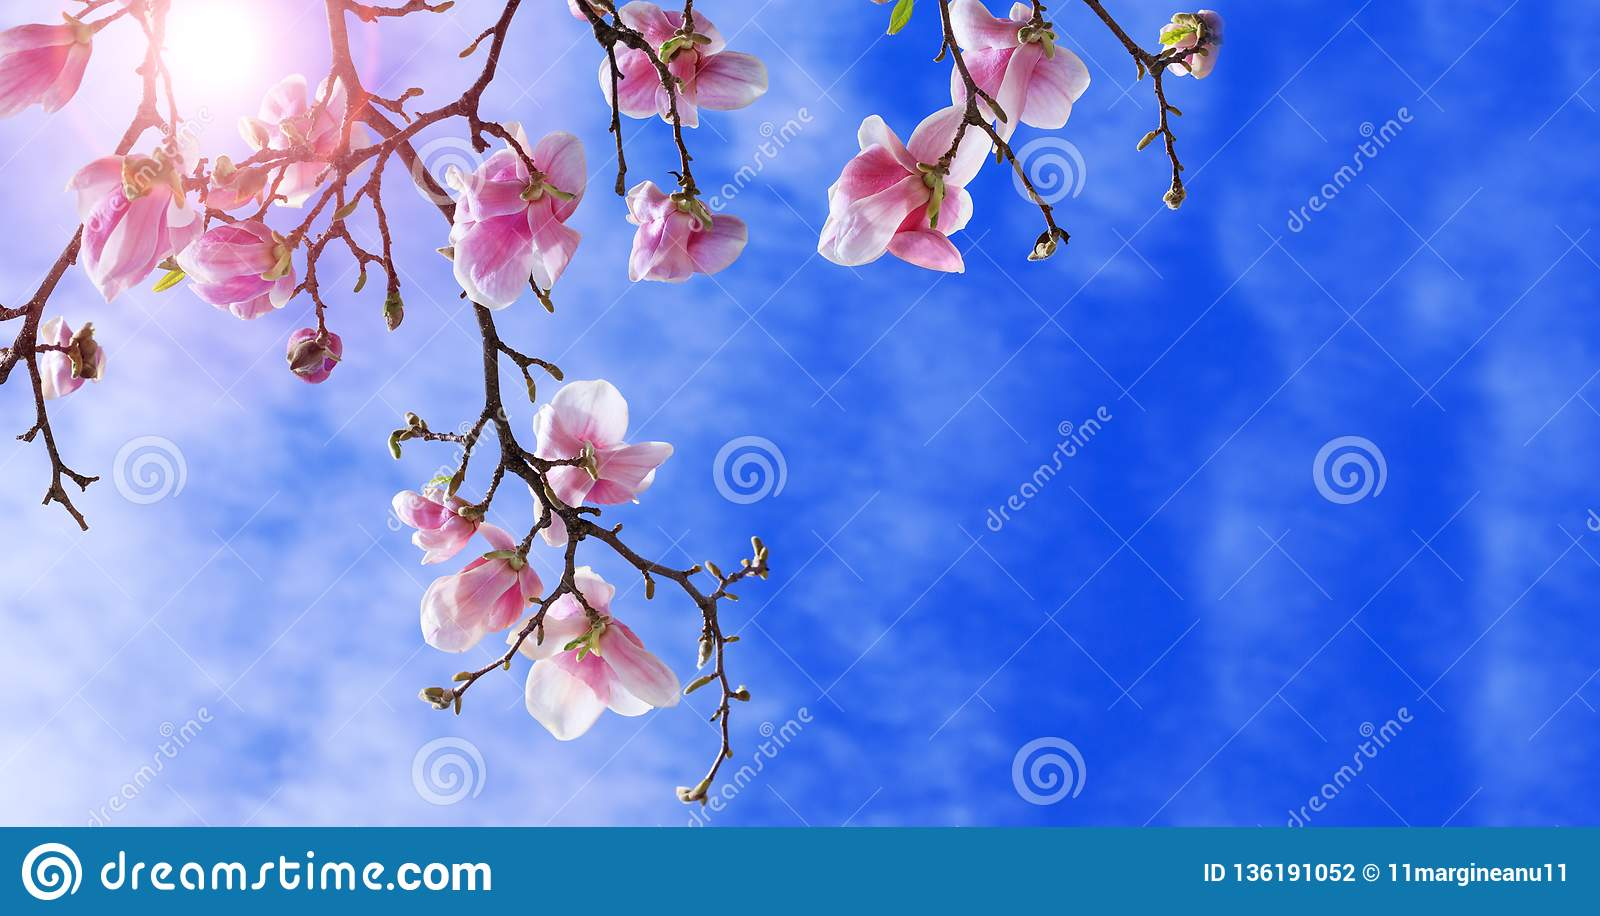 Colorful landscape of purple flowers in the spring season. Amazing background with magnolia tree. Beautiful pink magnolia petals